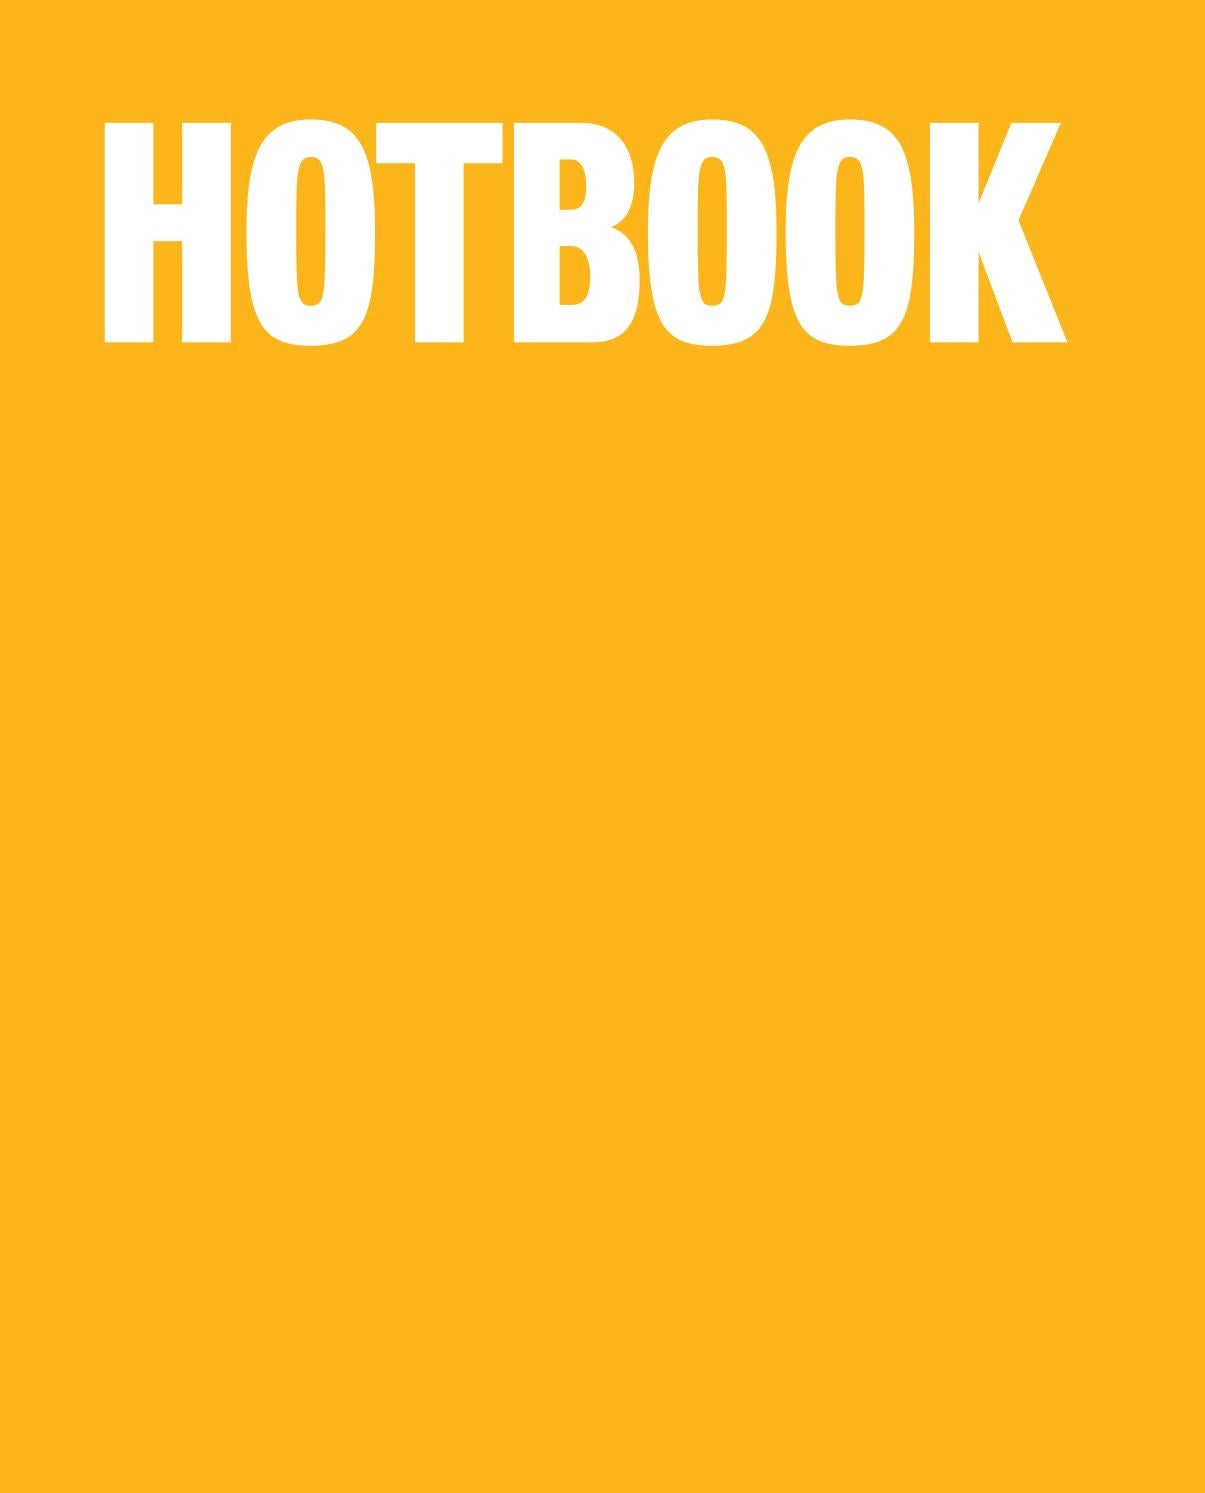 brand new 7dfcf 5ba28 HOTBOOK 007 by HOTBOOK - issuu